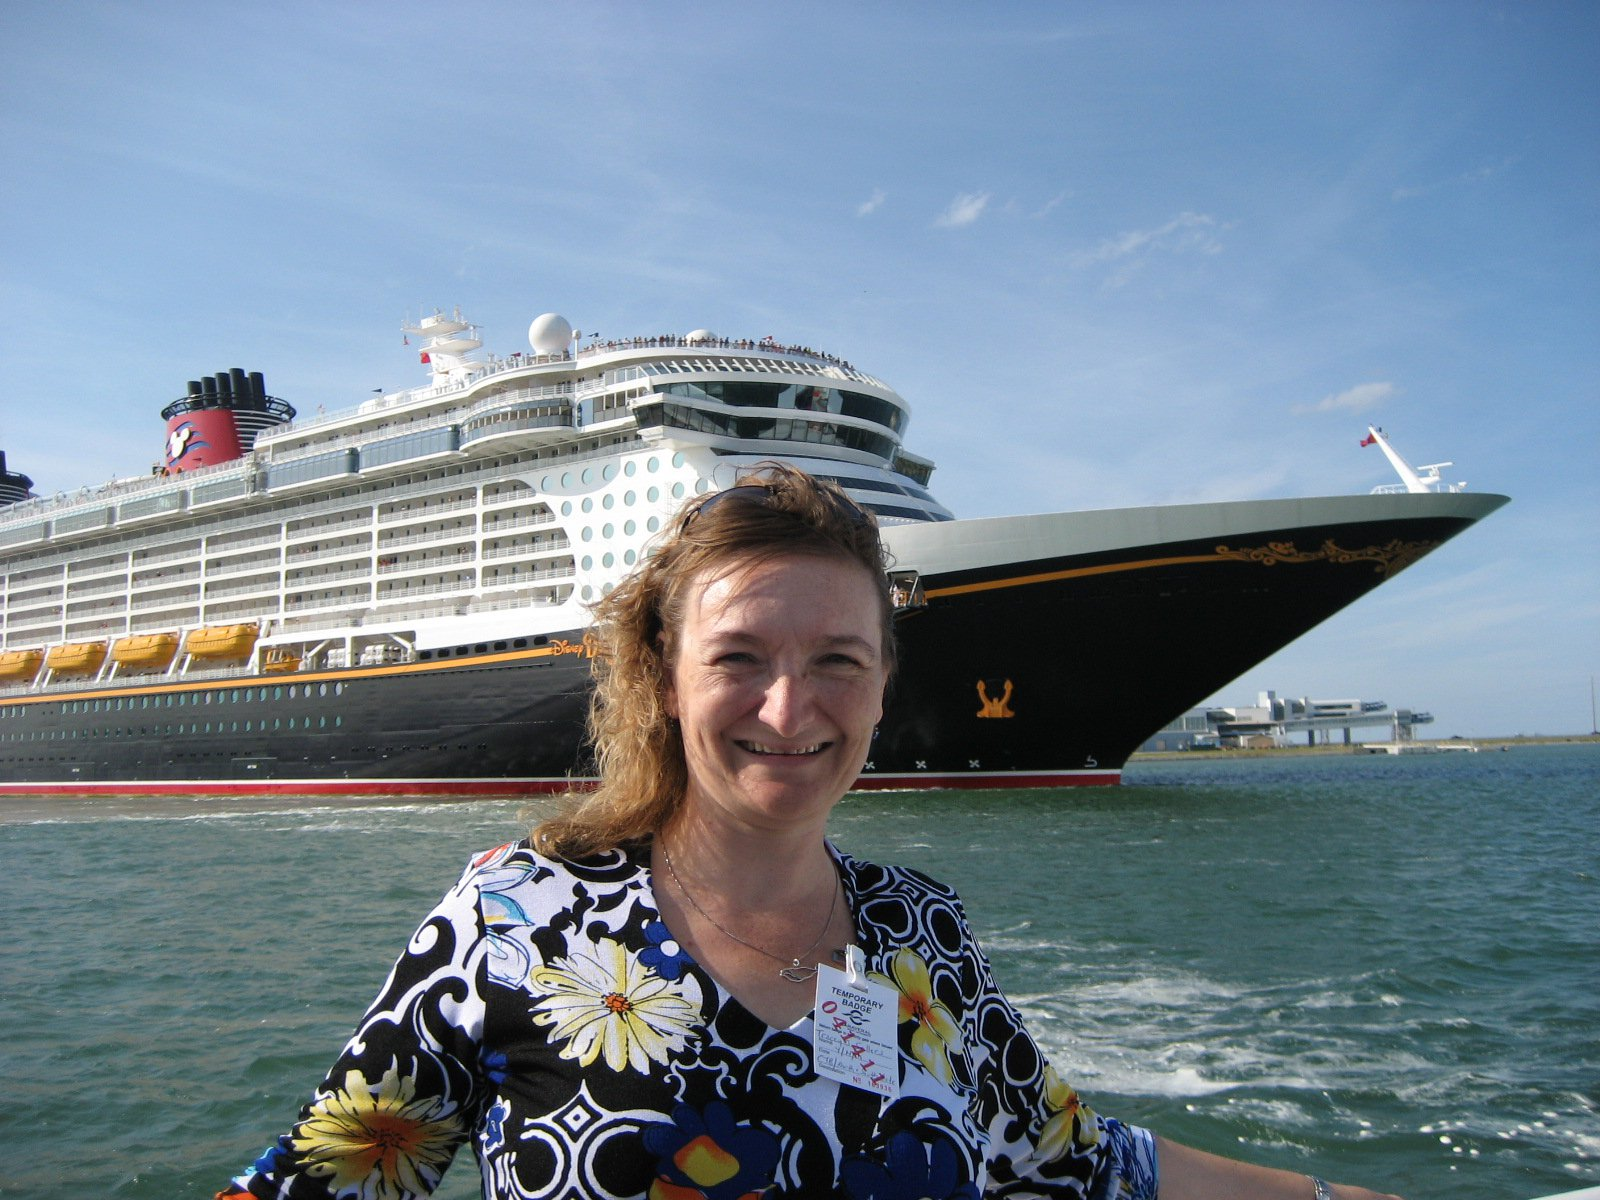 Go along on a Field Trip to the Disney Dream | PassPorter.com